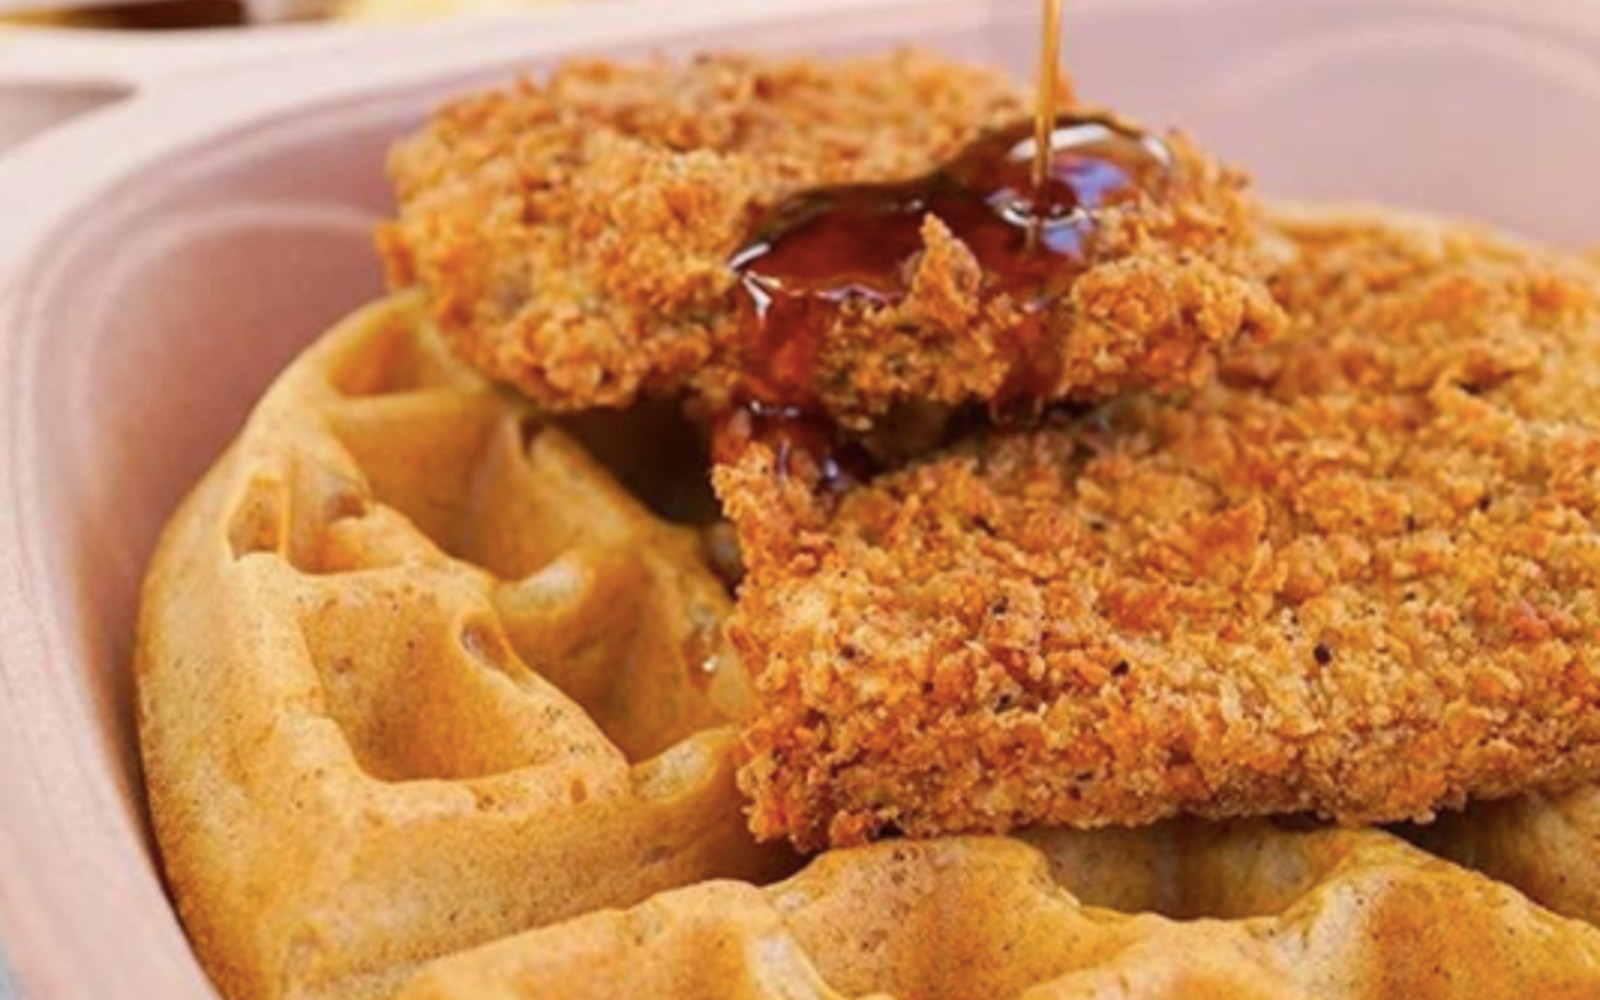 Vegan chicken and waffles with maple syrup